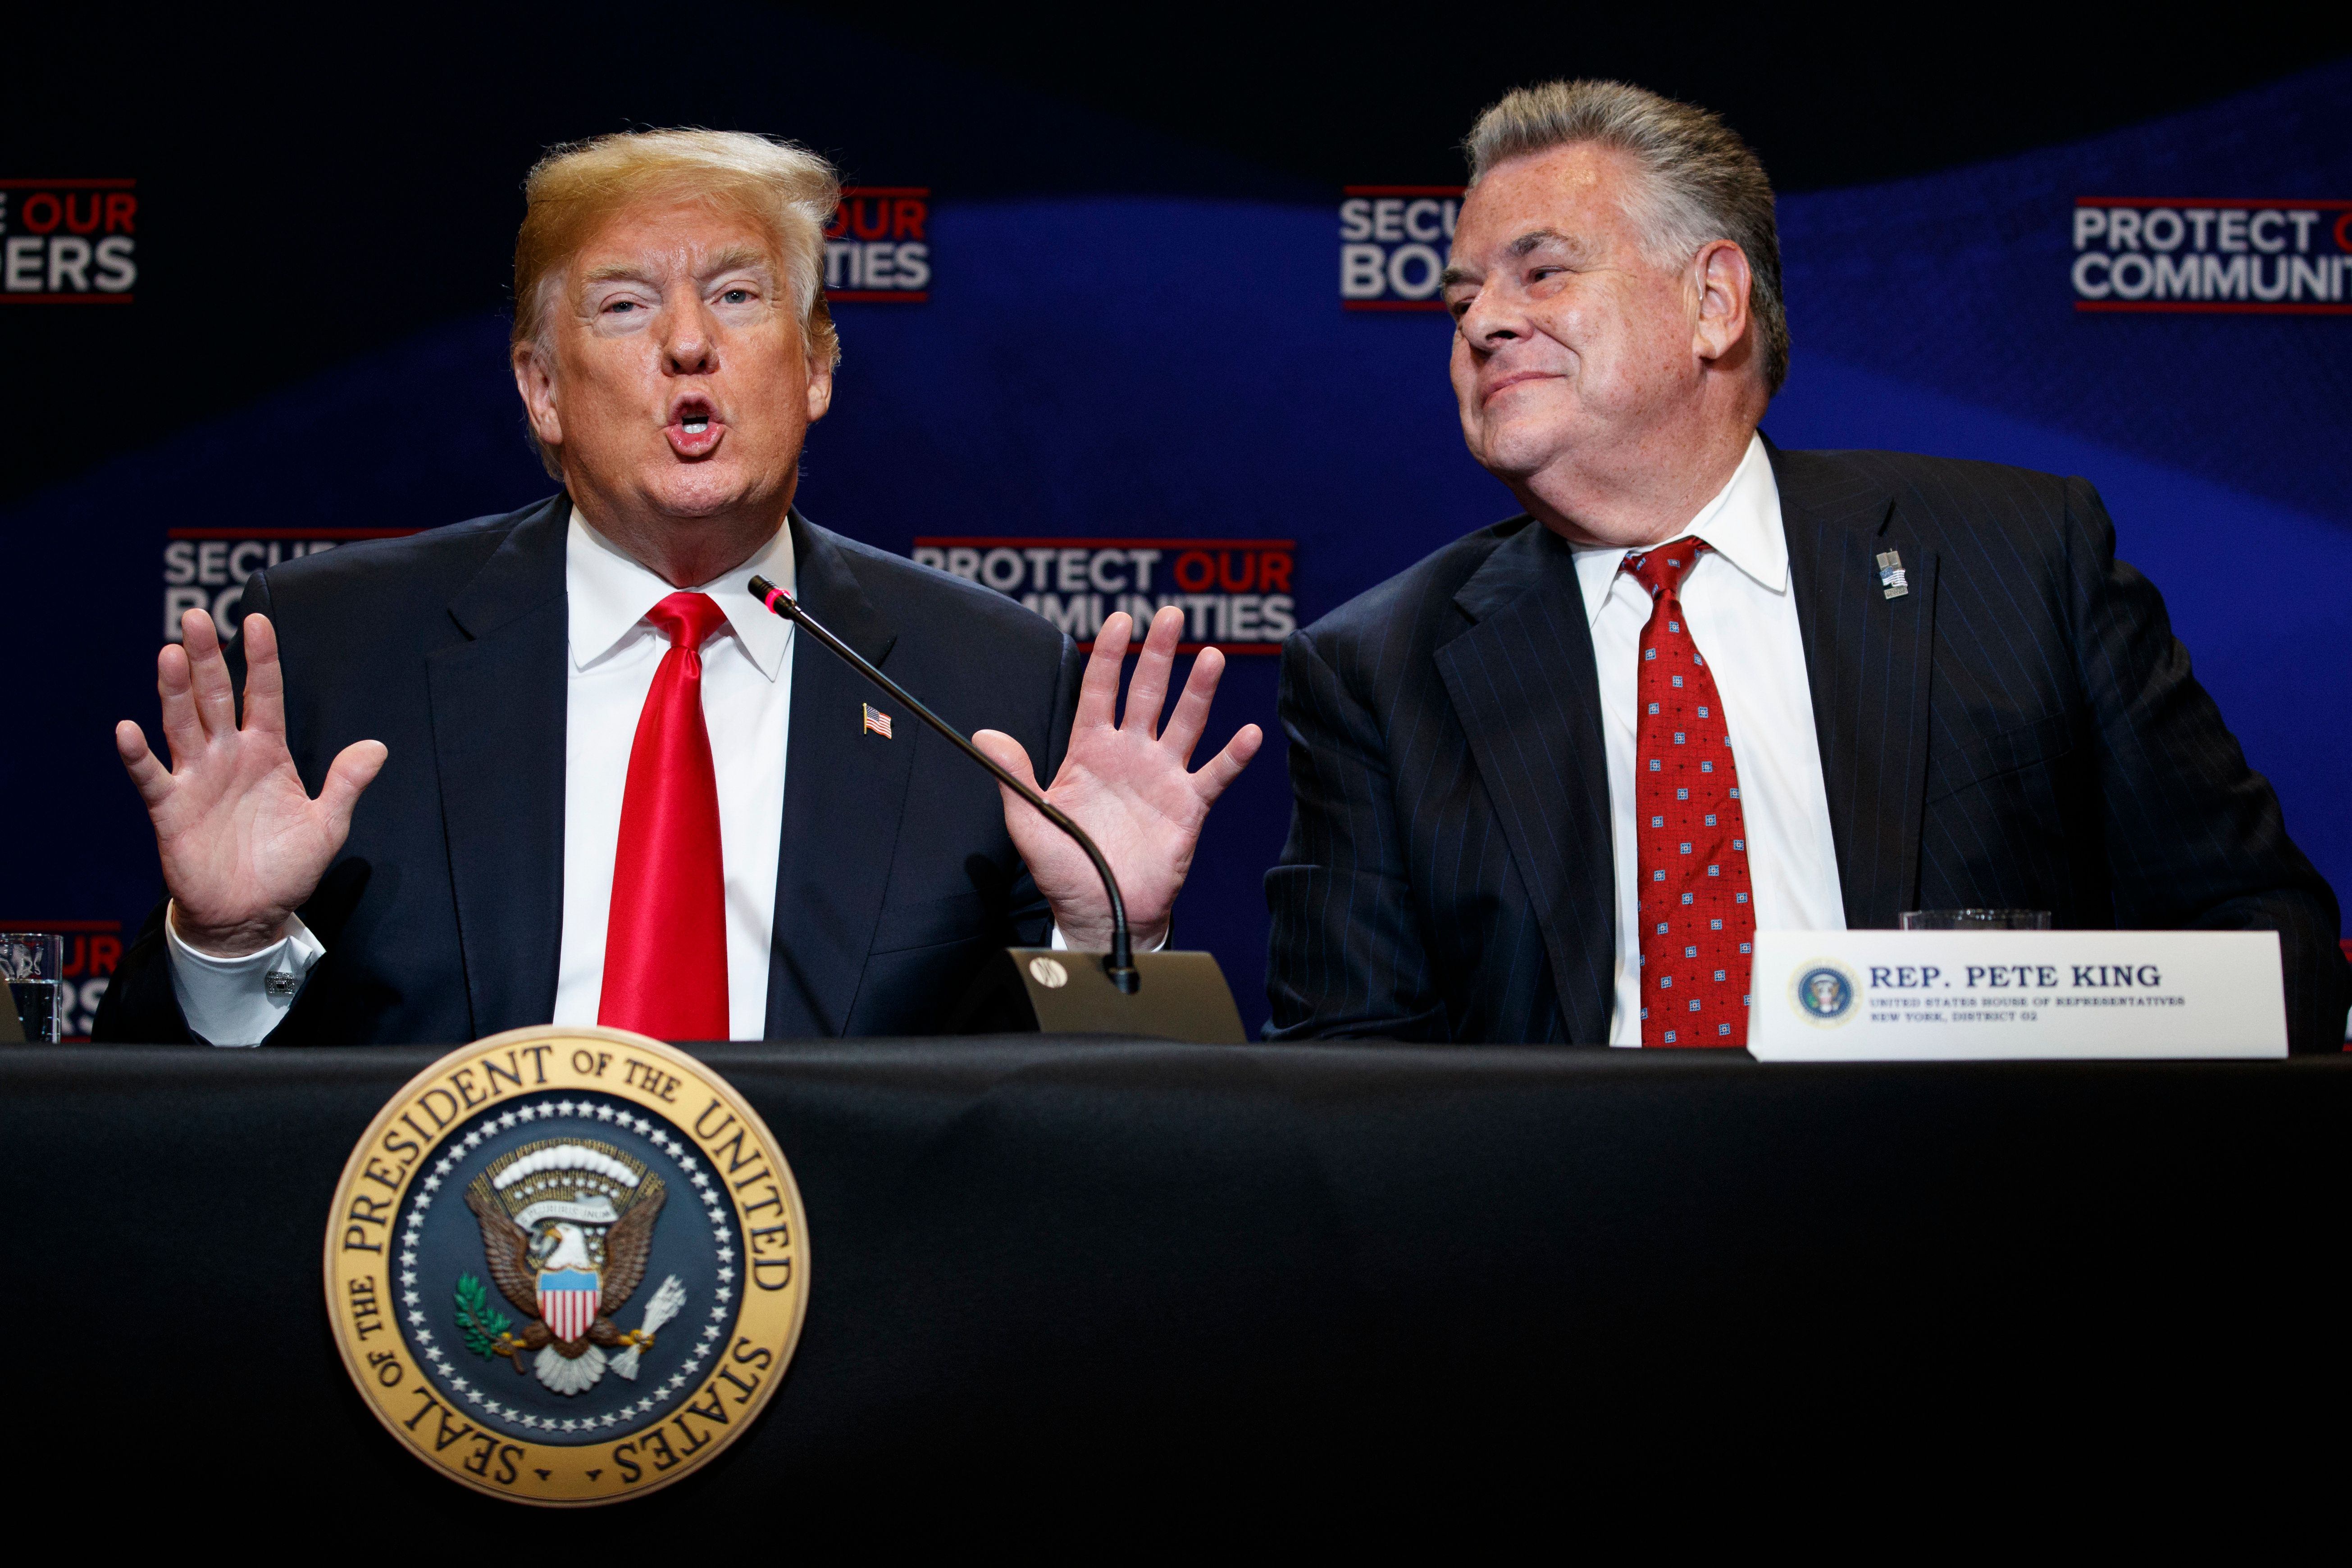 Rep. Peter King, R-N.Y., right, listens as President Donald Trump speaks during a roundtable on immigration policy at Morrelly Homeland Security Center, Wednesday, May 23, 2018, in Bethpage, N.Y. (AP Photo/Evan Vucci)